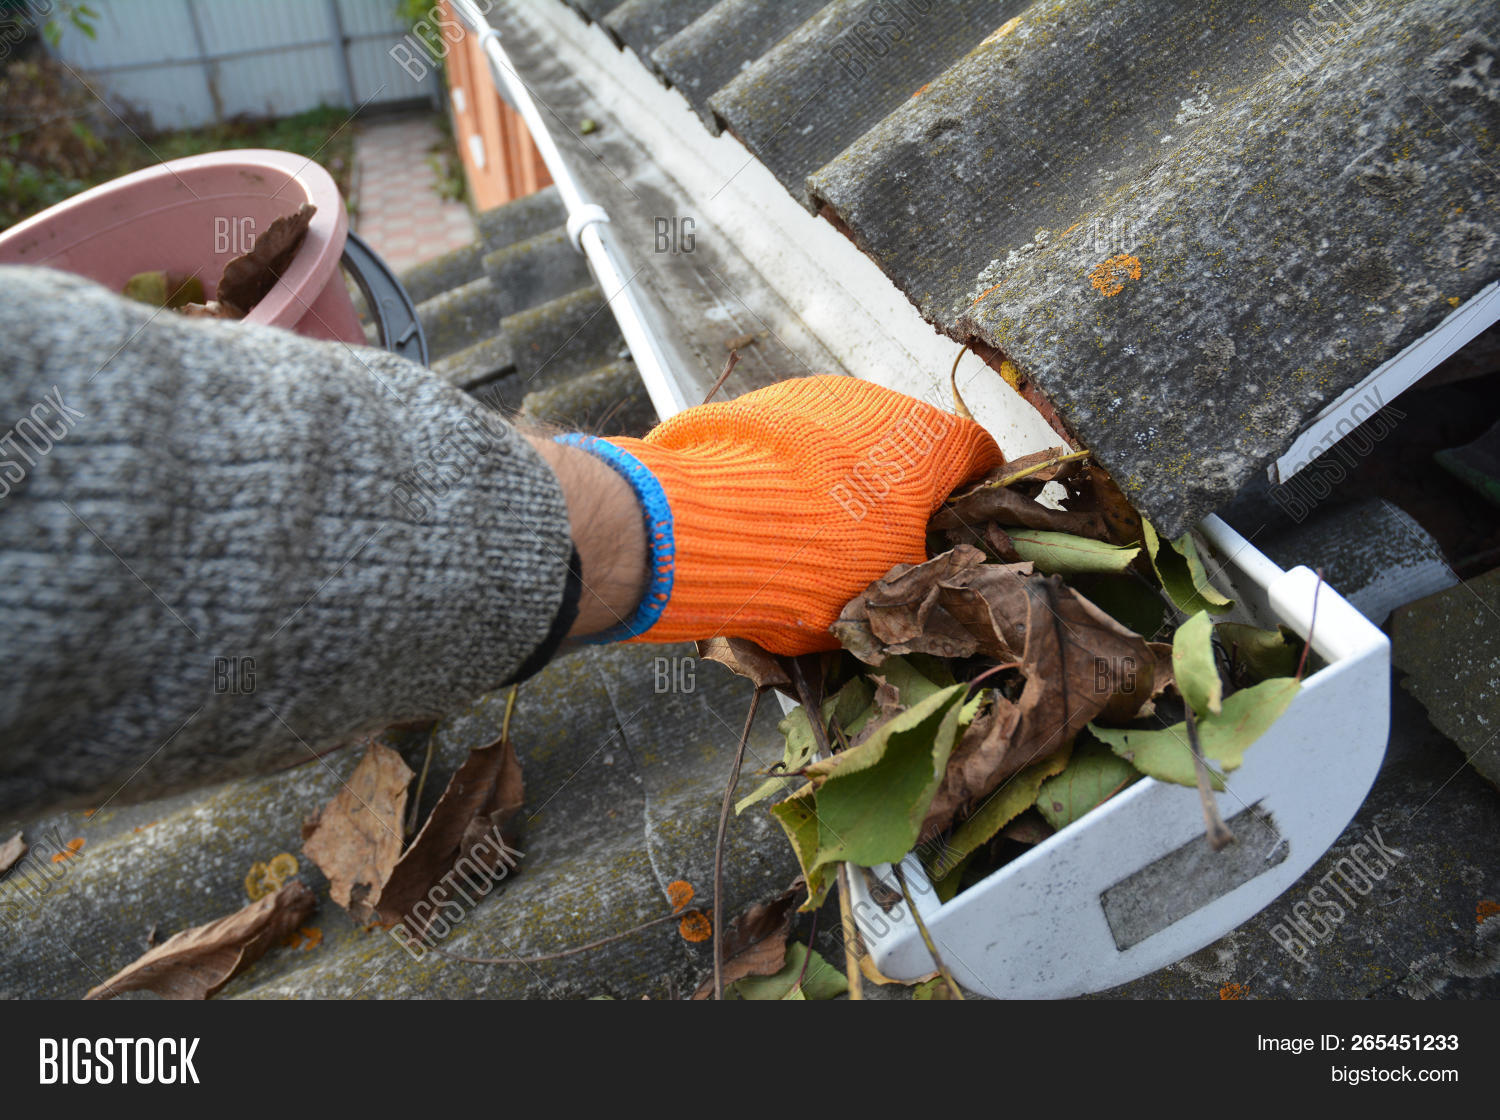 Rain Gutter Cleaning Image & Photo (Free Trial)   Bigstock